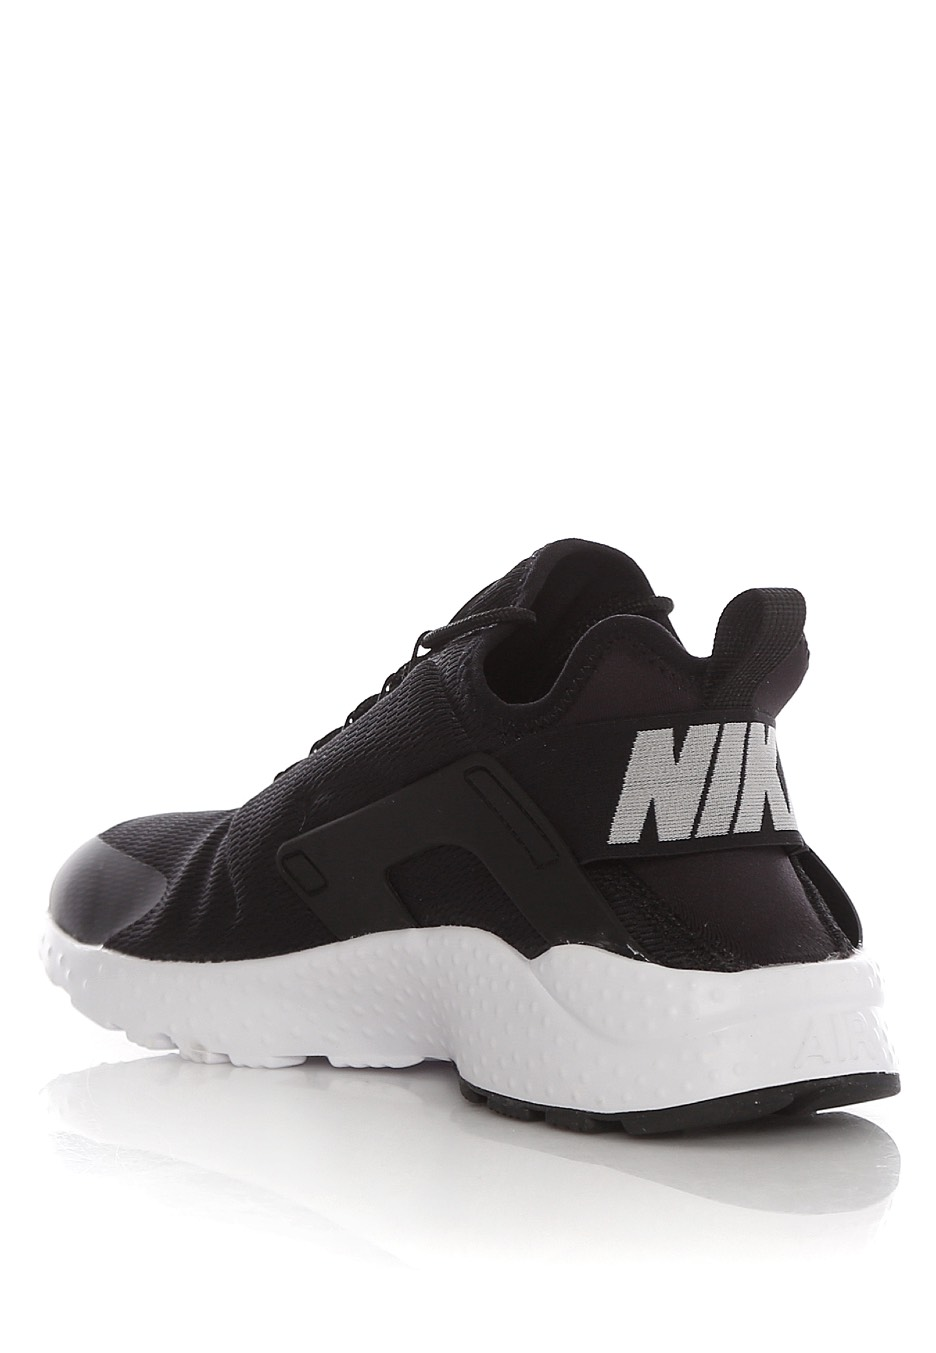 super popular 1917c 50e21 ... sweden nike air huarache run ultra black white girl shoes 22a84 26ca0